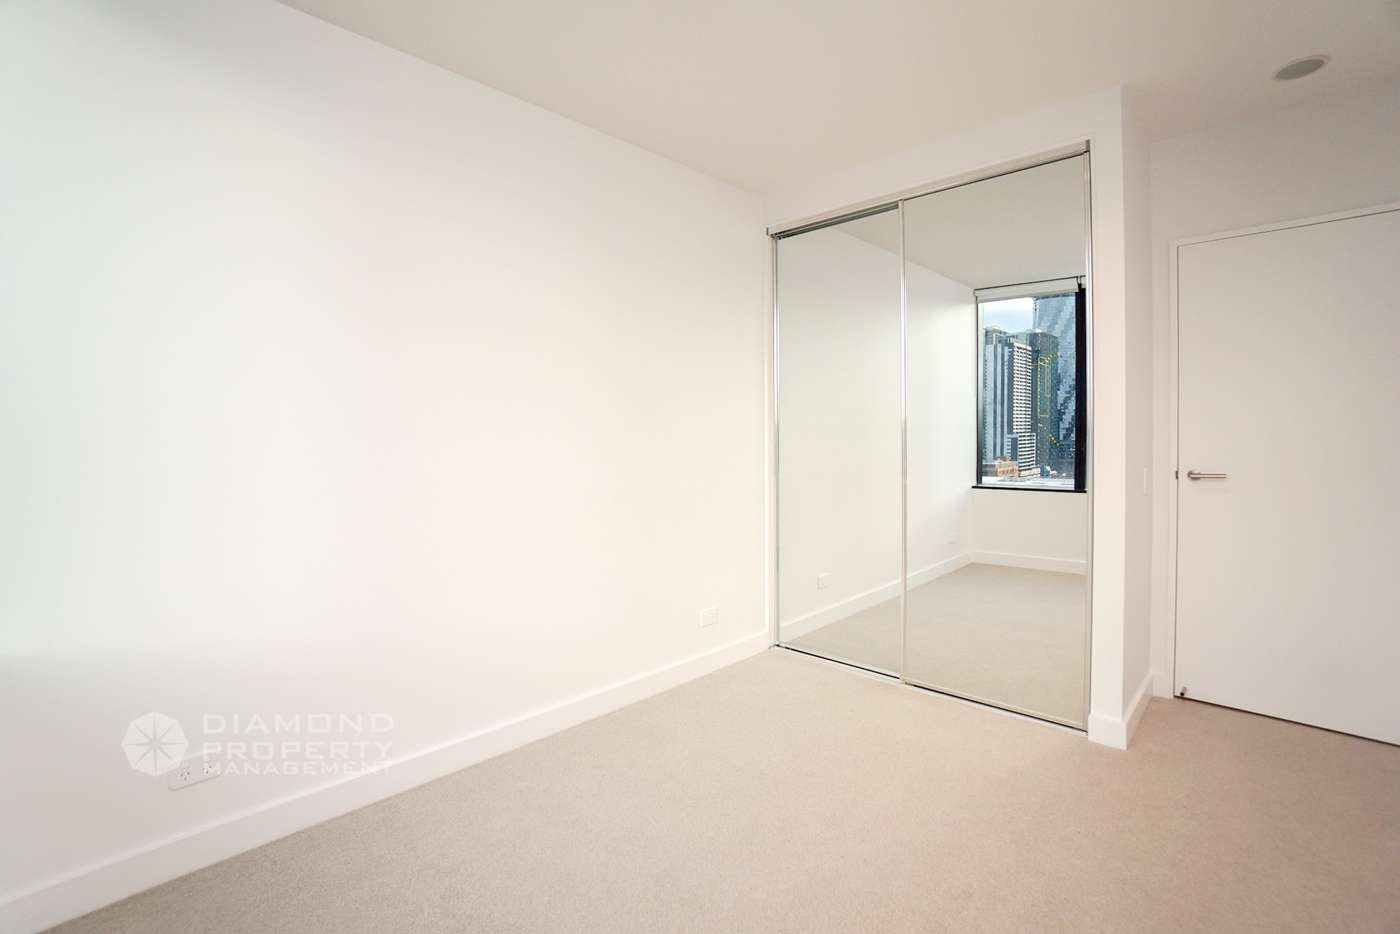 Sixth view of Homely apartment listing, 1616/628 Flinders Street, Docklands VIC 3008